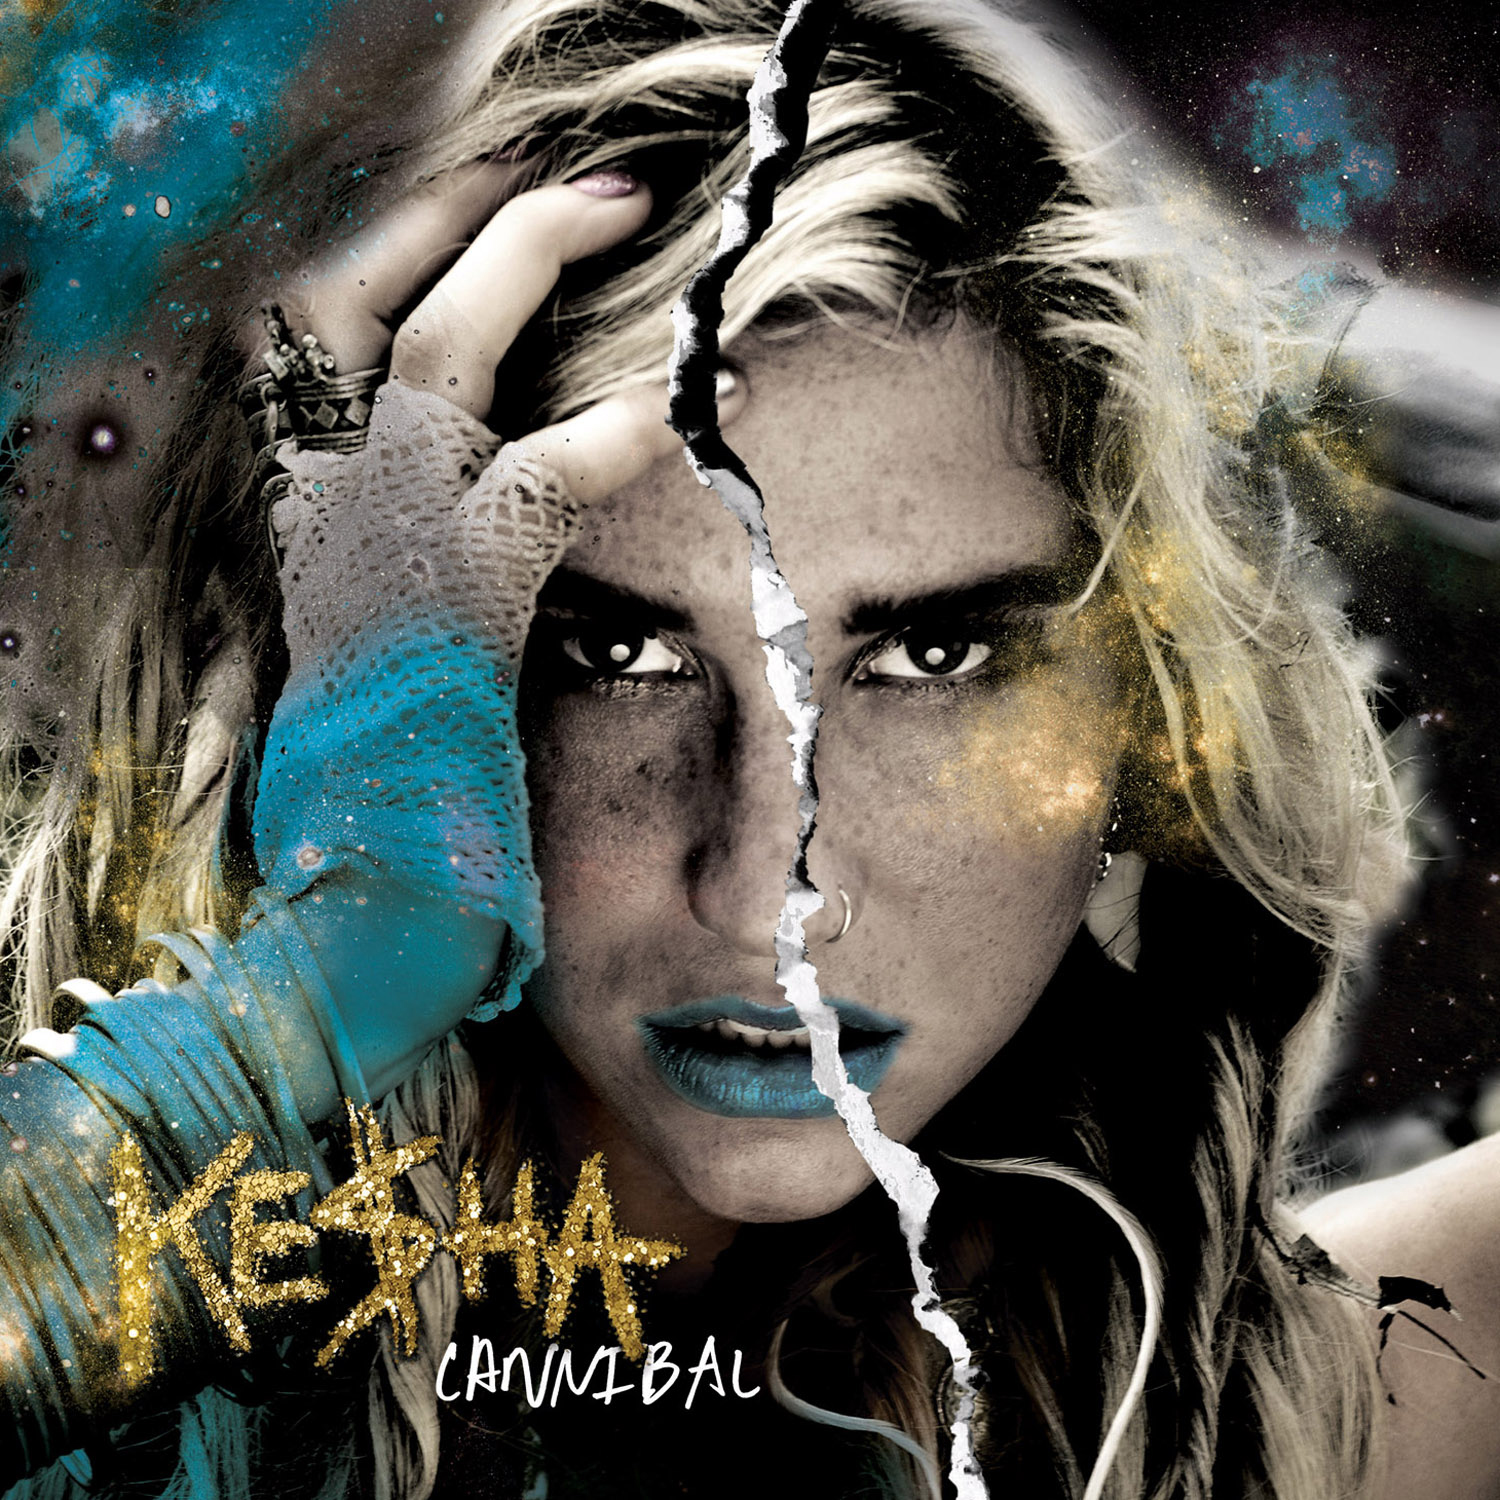 Kesha Cannibal Album